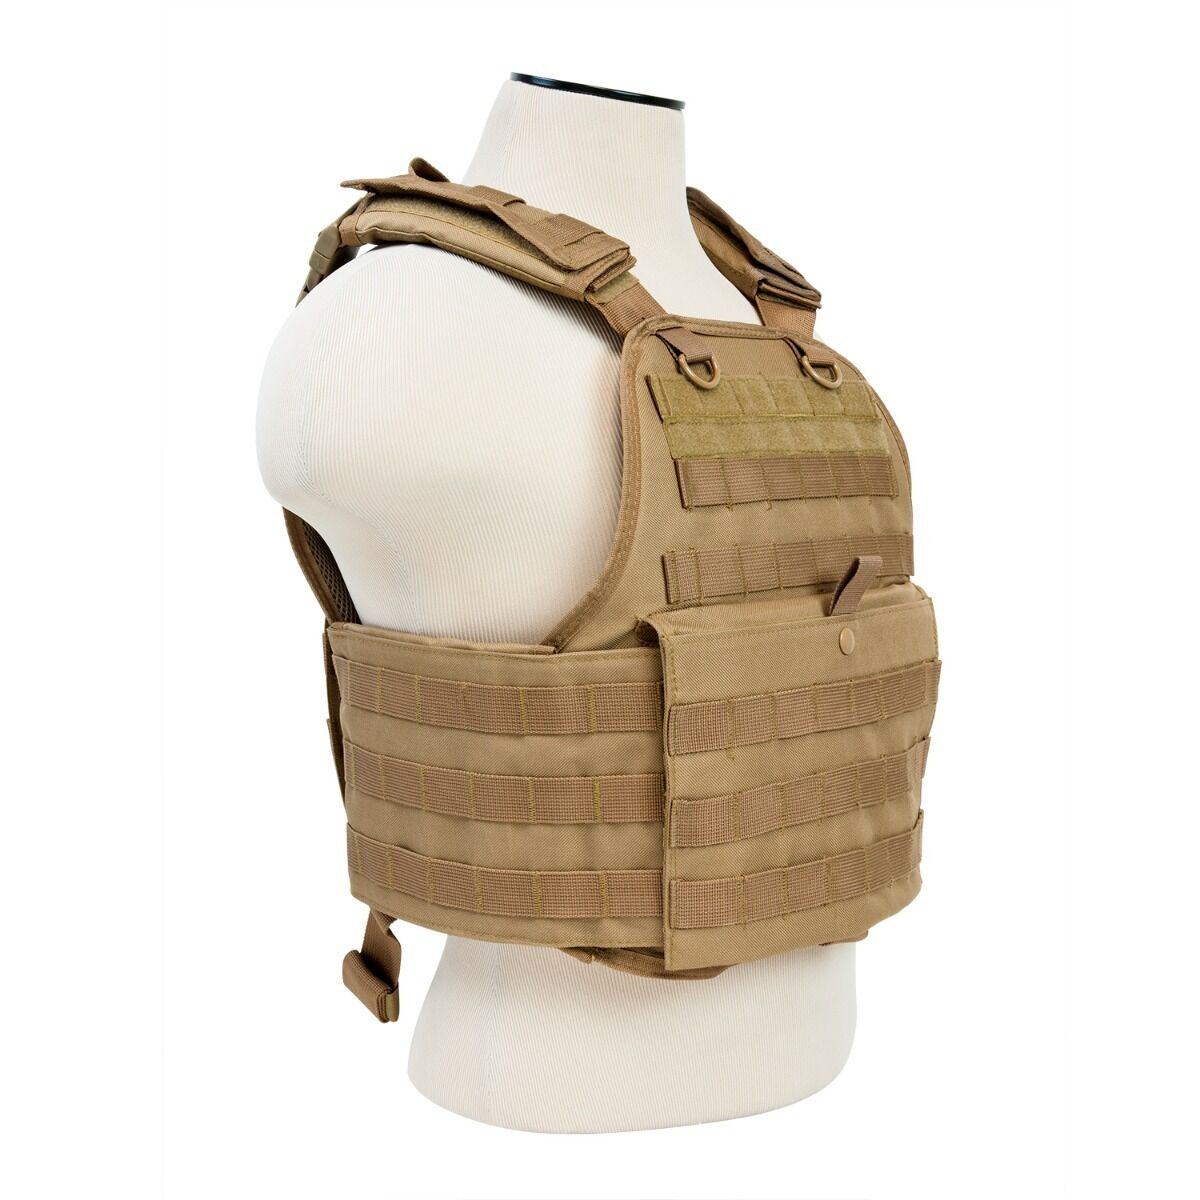 NcStar TAN Police Military Tactical MOLLE    PALs Adj Plate Carrier Vest  come to choose your own sports style